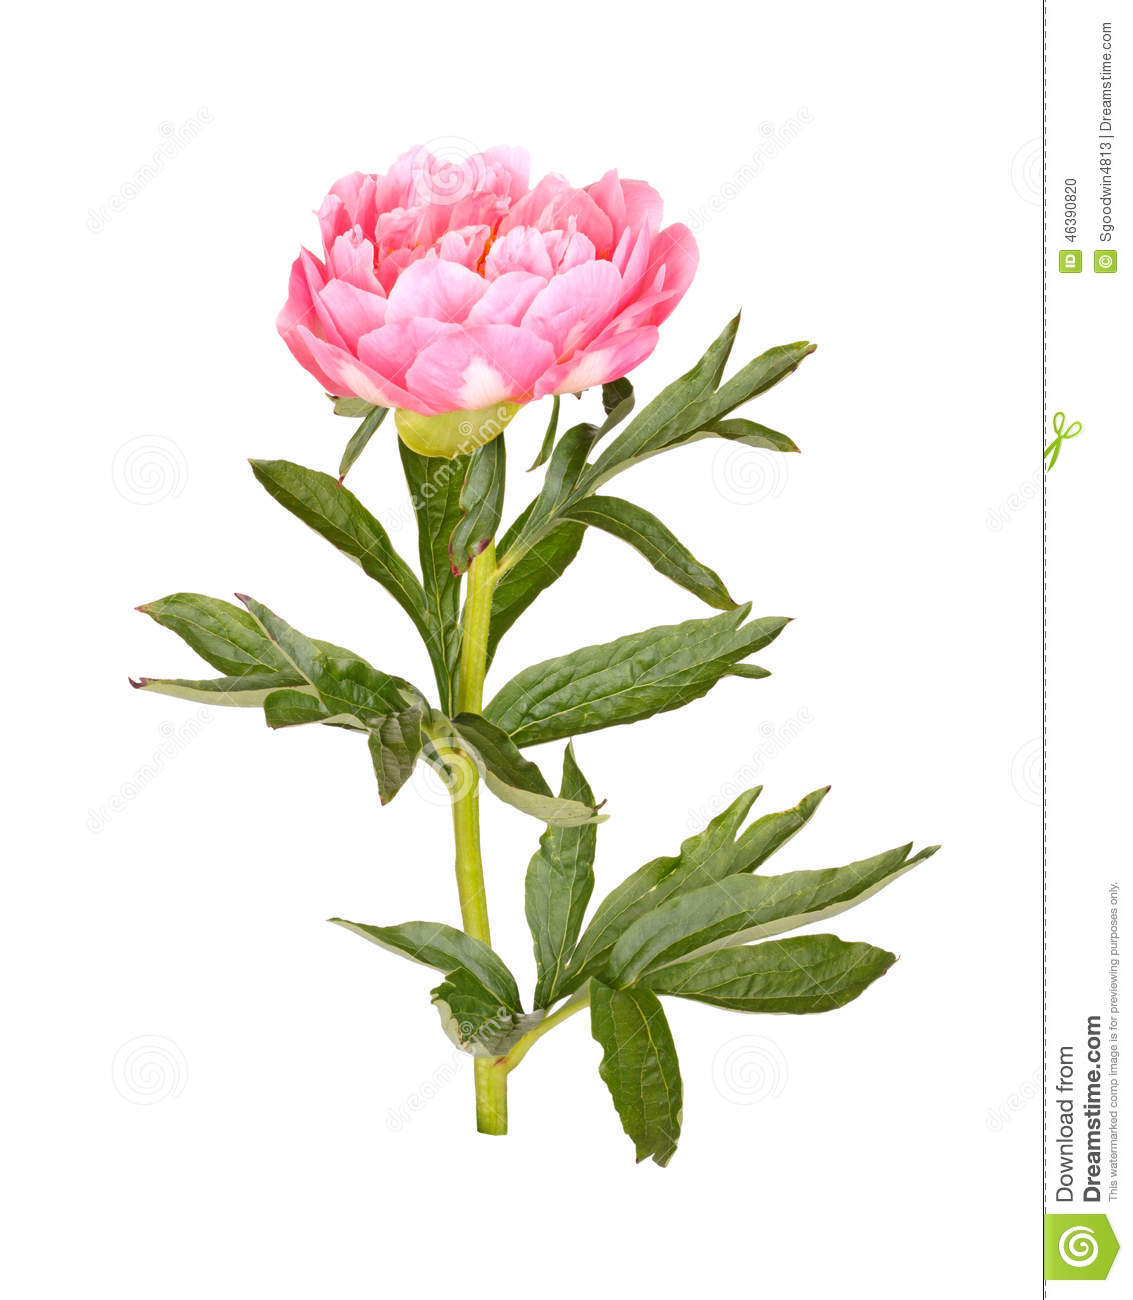 One double flower, stem and leaves of a pink peony (Paeonia lactiflora ...